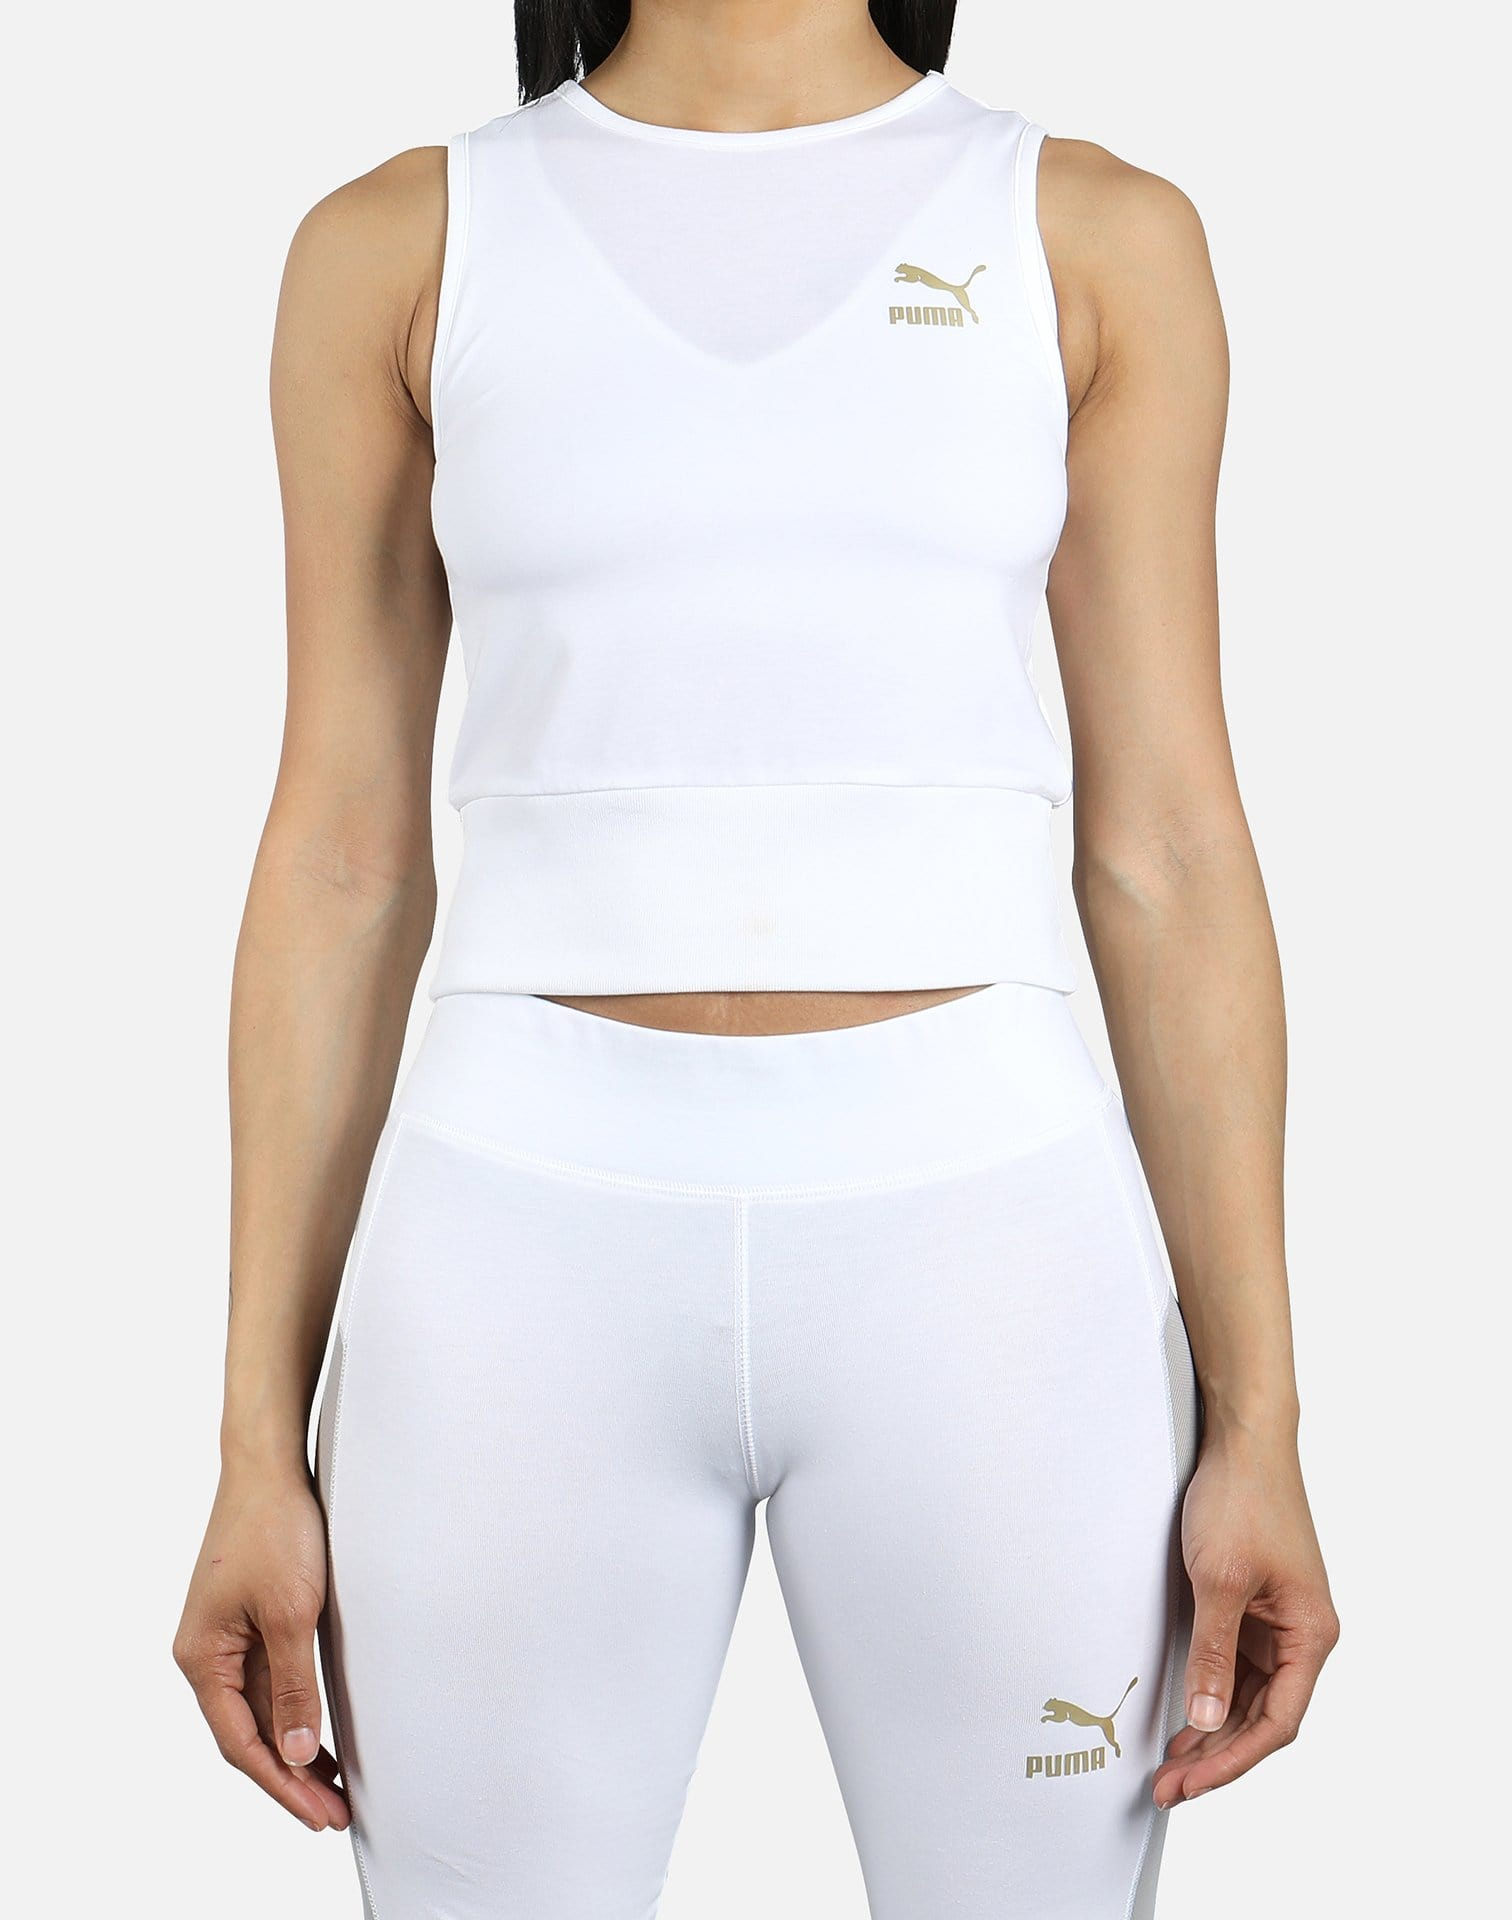 PUMA Women's Cropped Tank Top